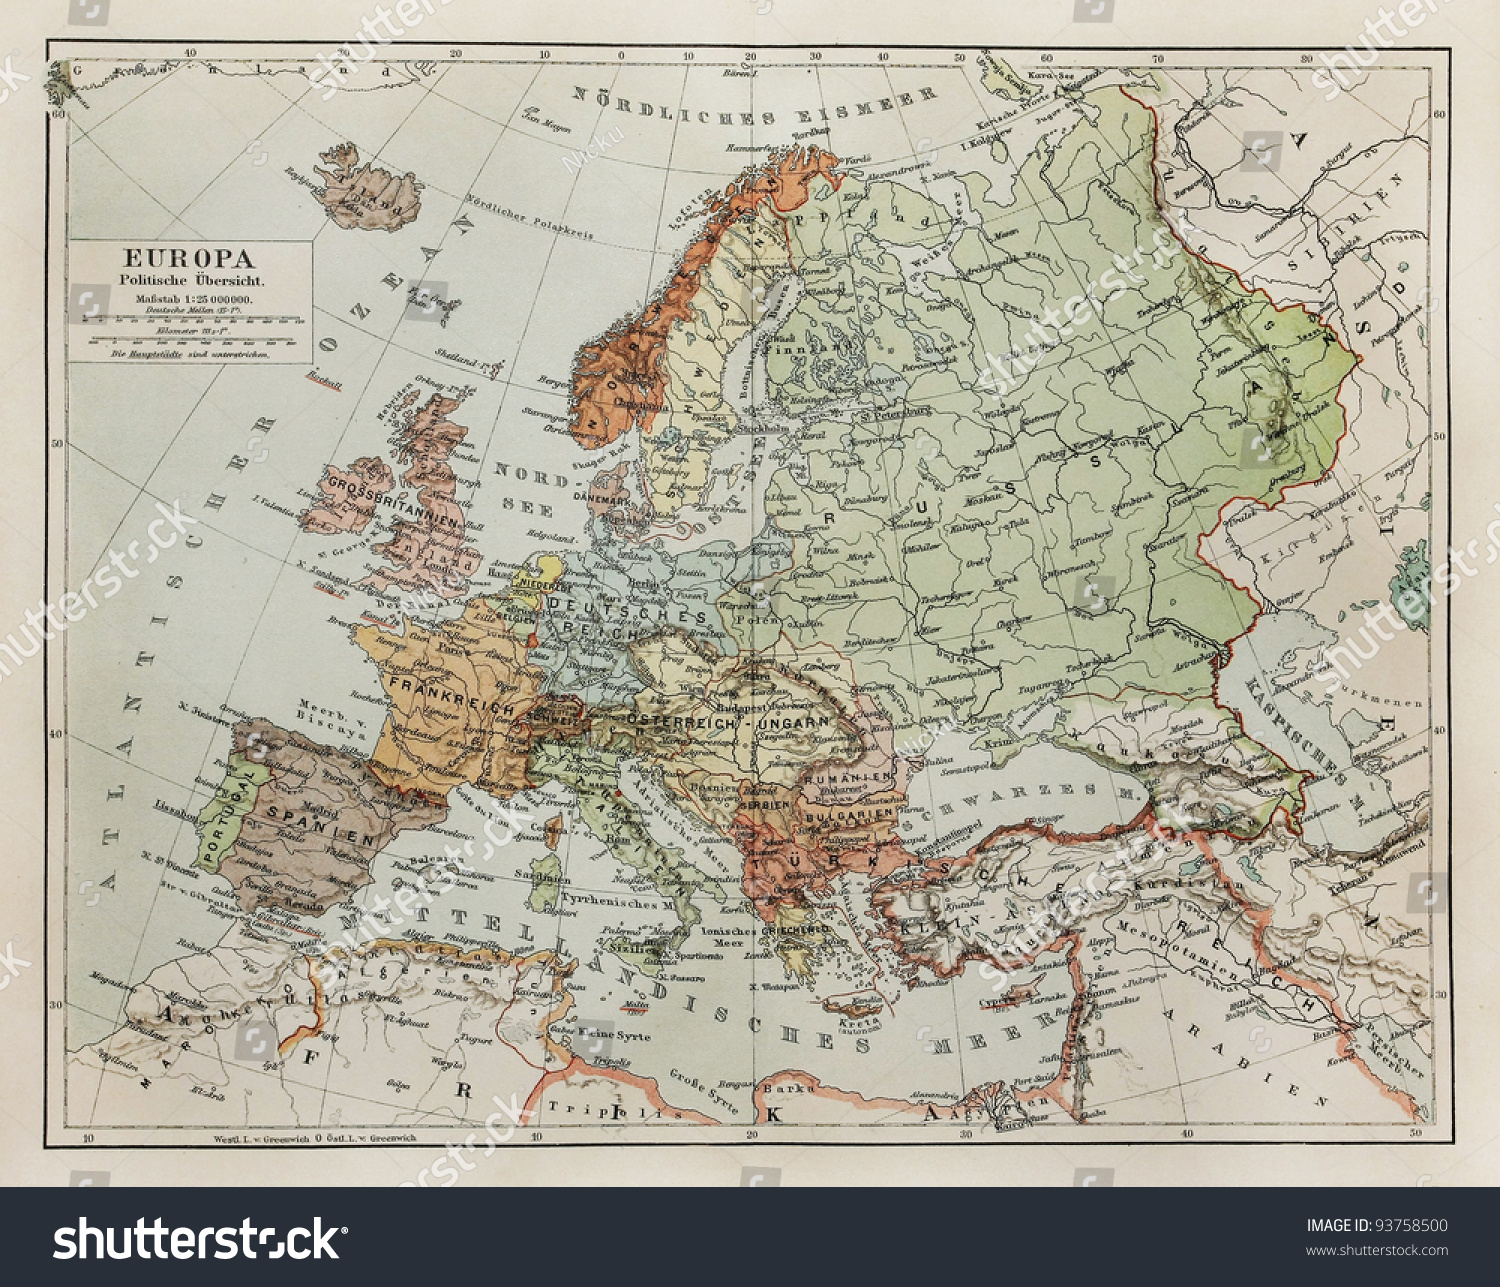 Vintage Map Europe End 19th Century Stock Photo (Edit Now) 93758500 ...